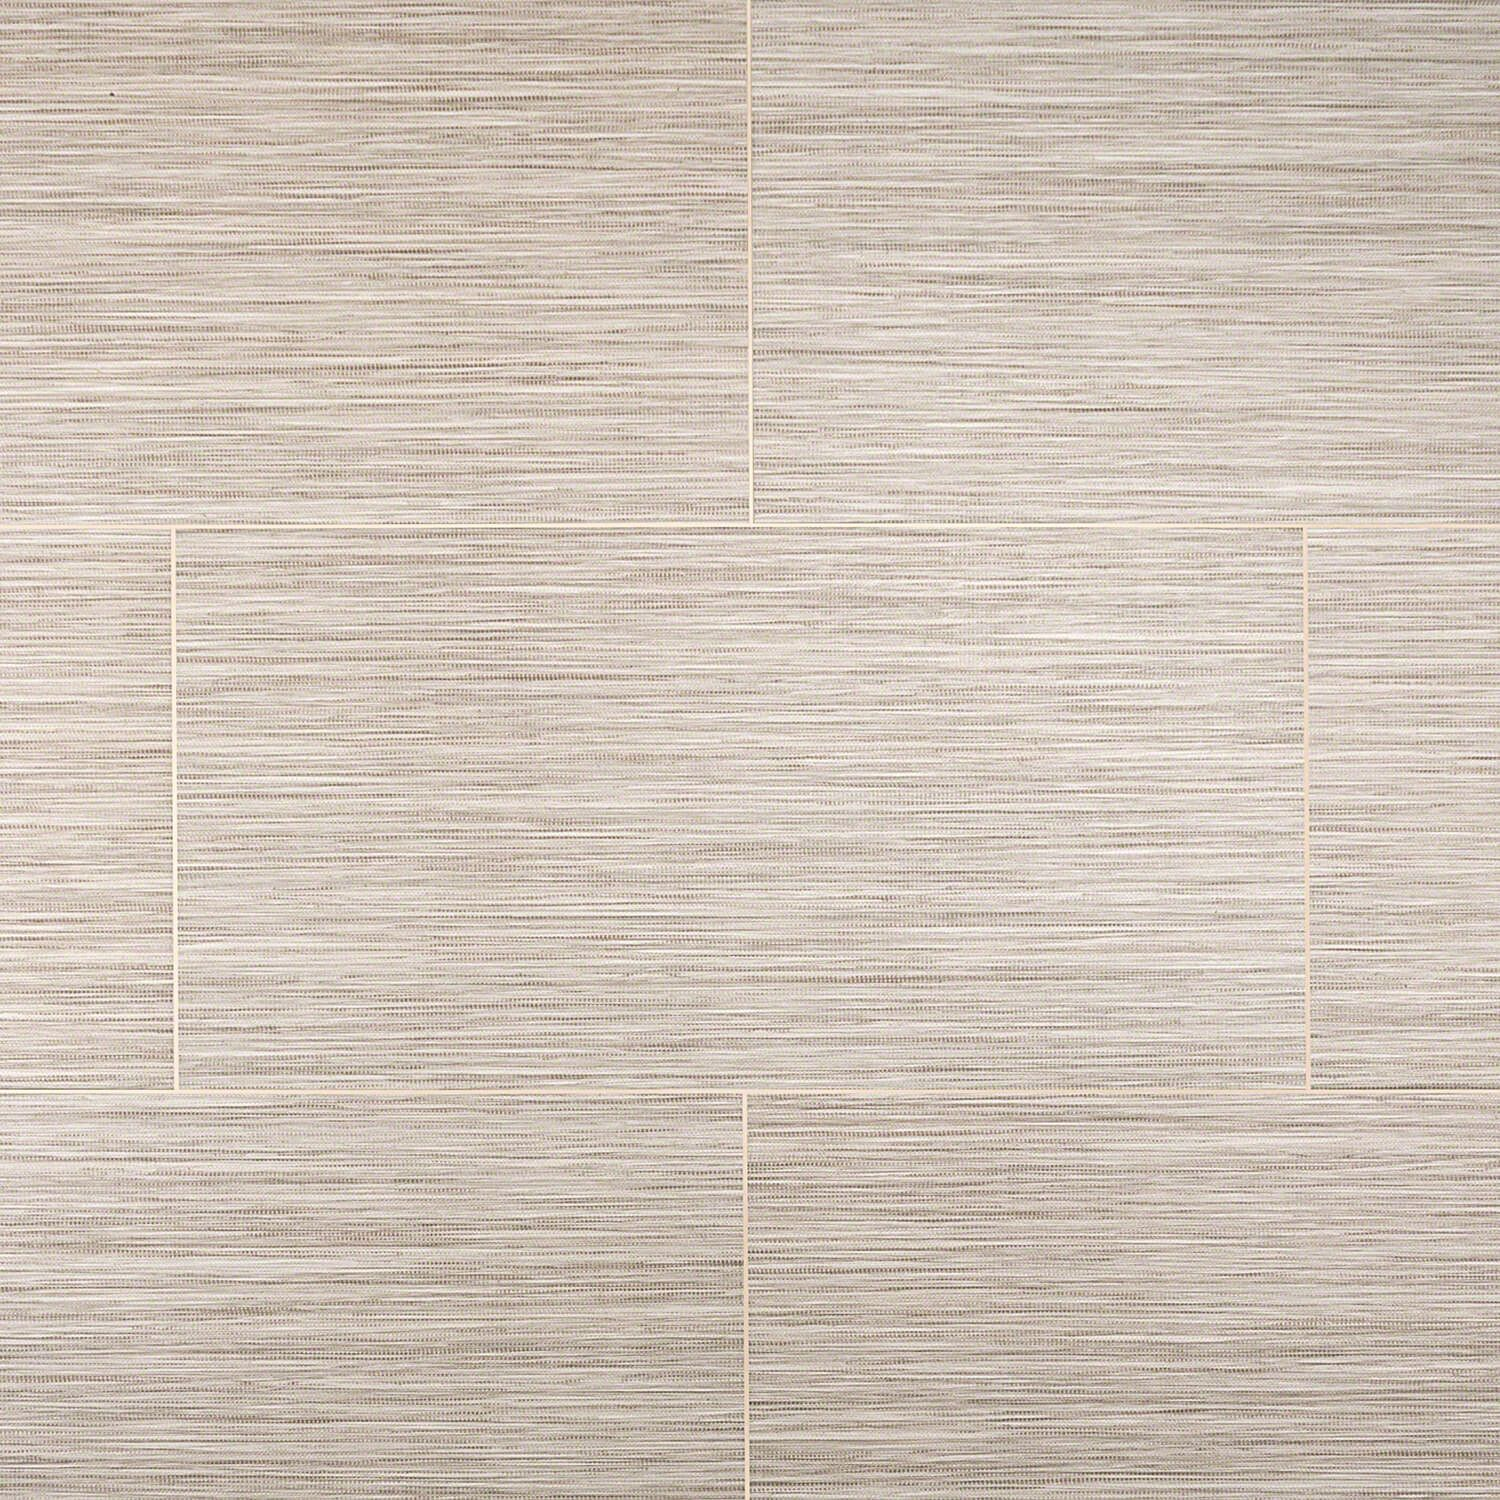 Piermont Biscuit 12x24 Fabric Look Porcelain Tile